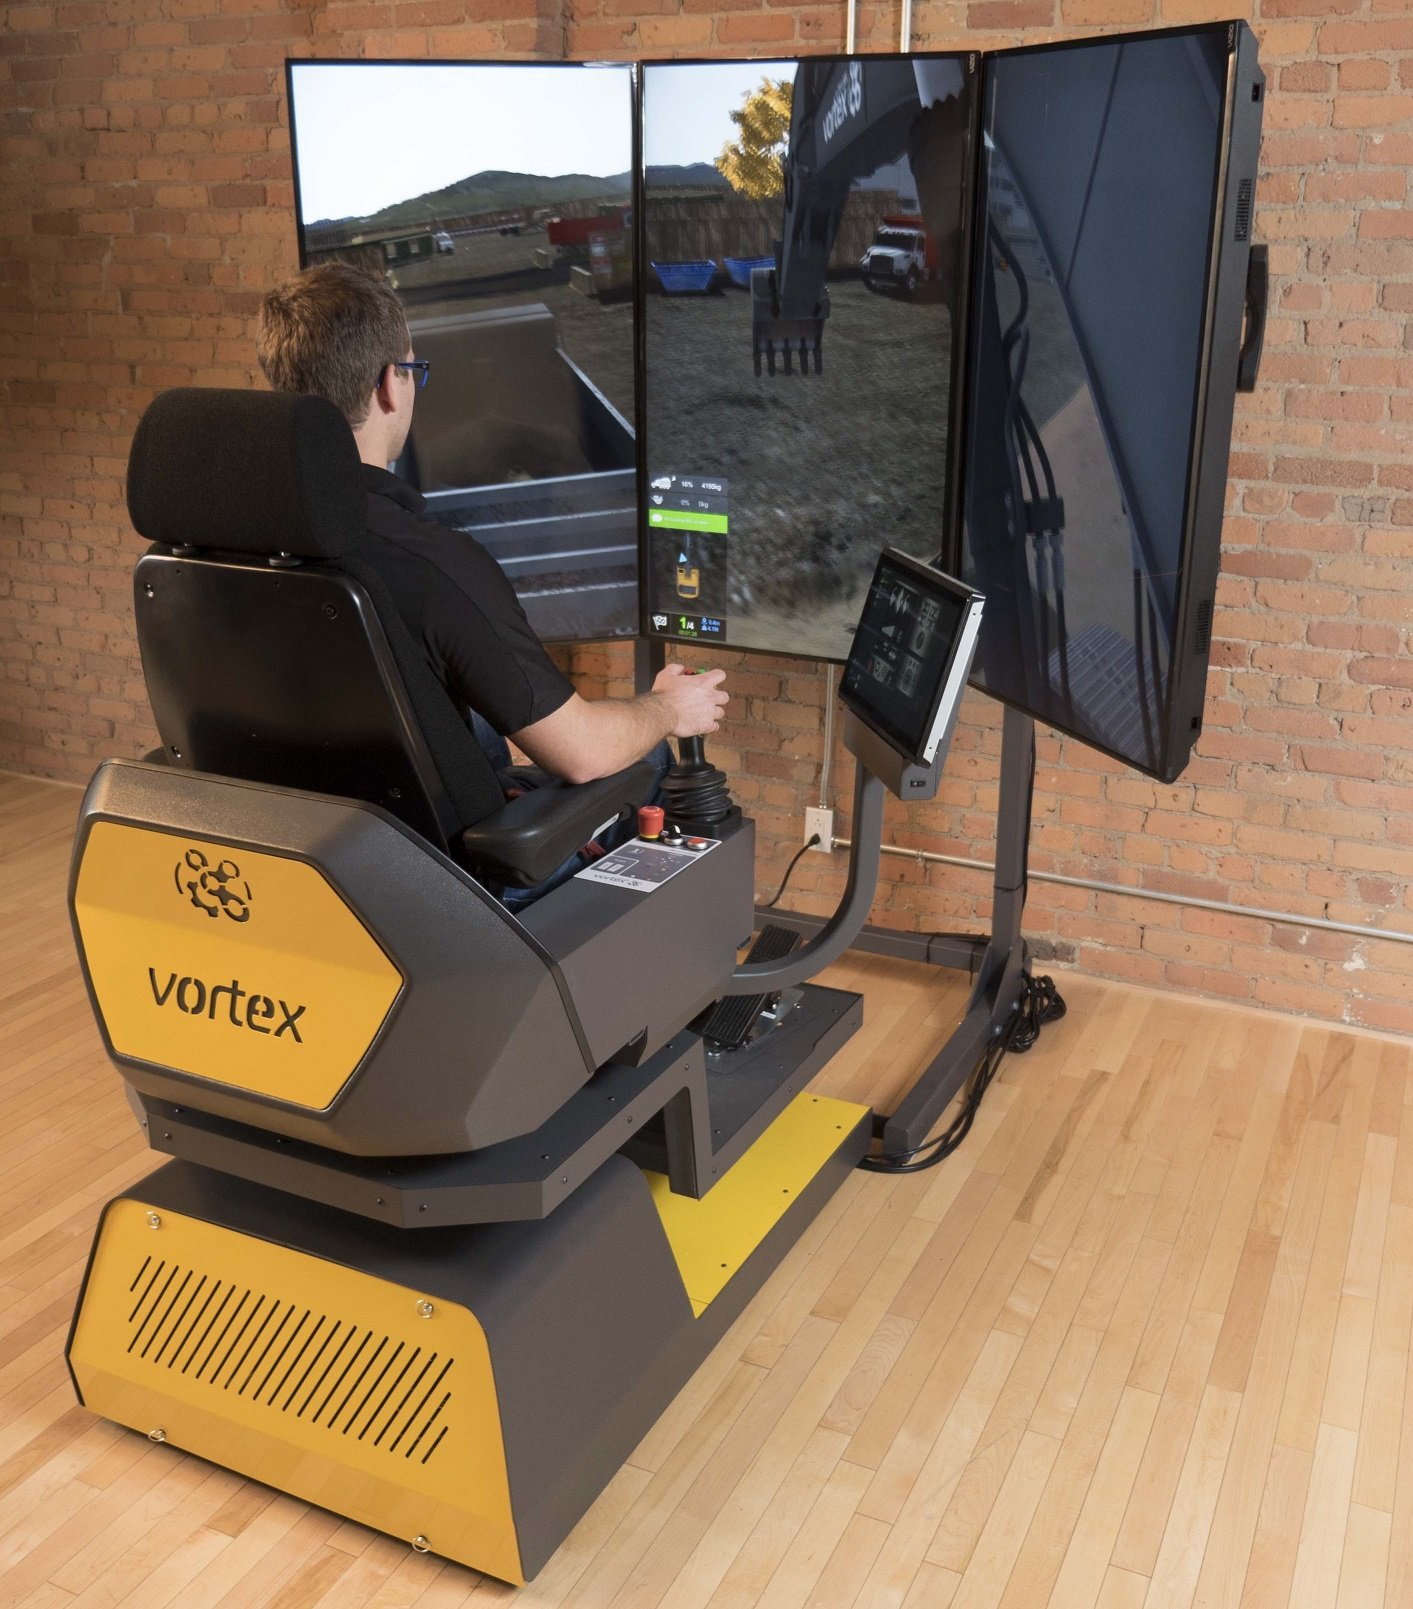 Heavy equipment simulator in action